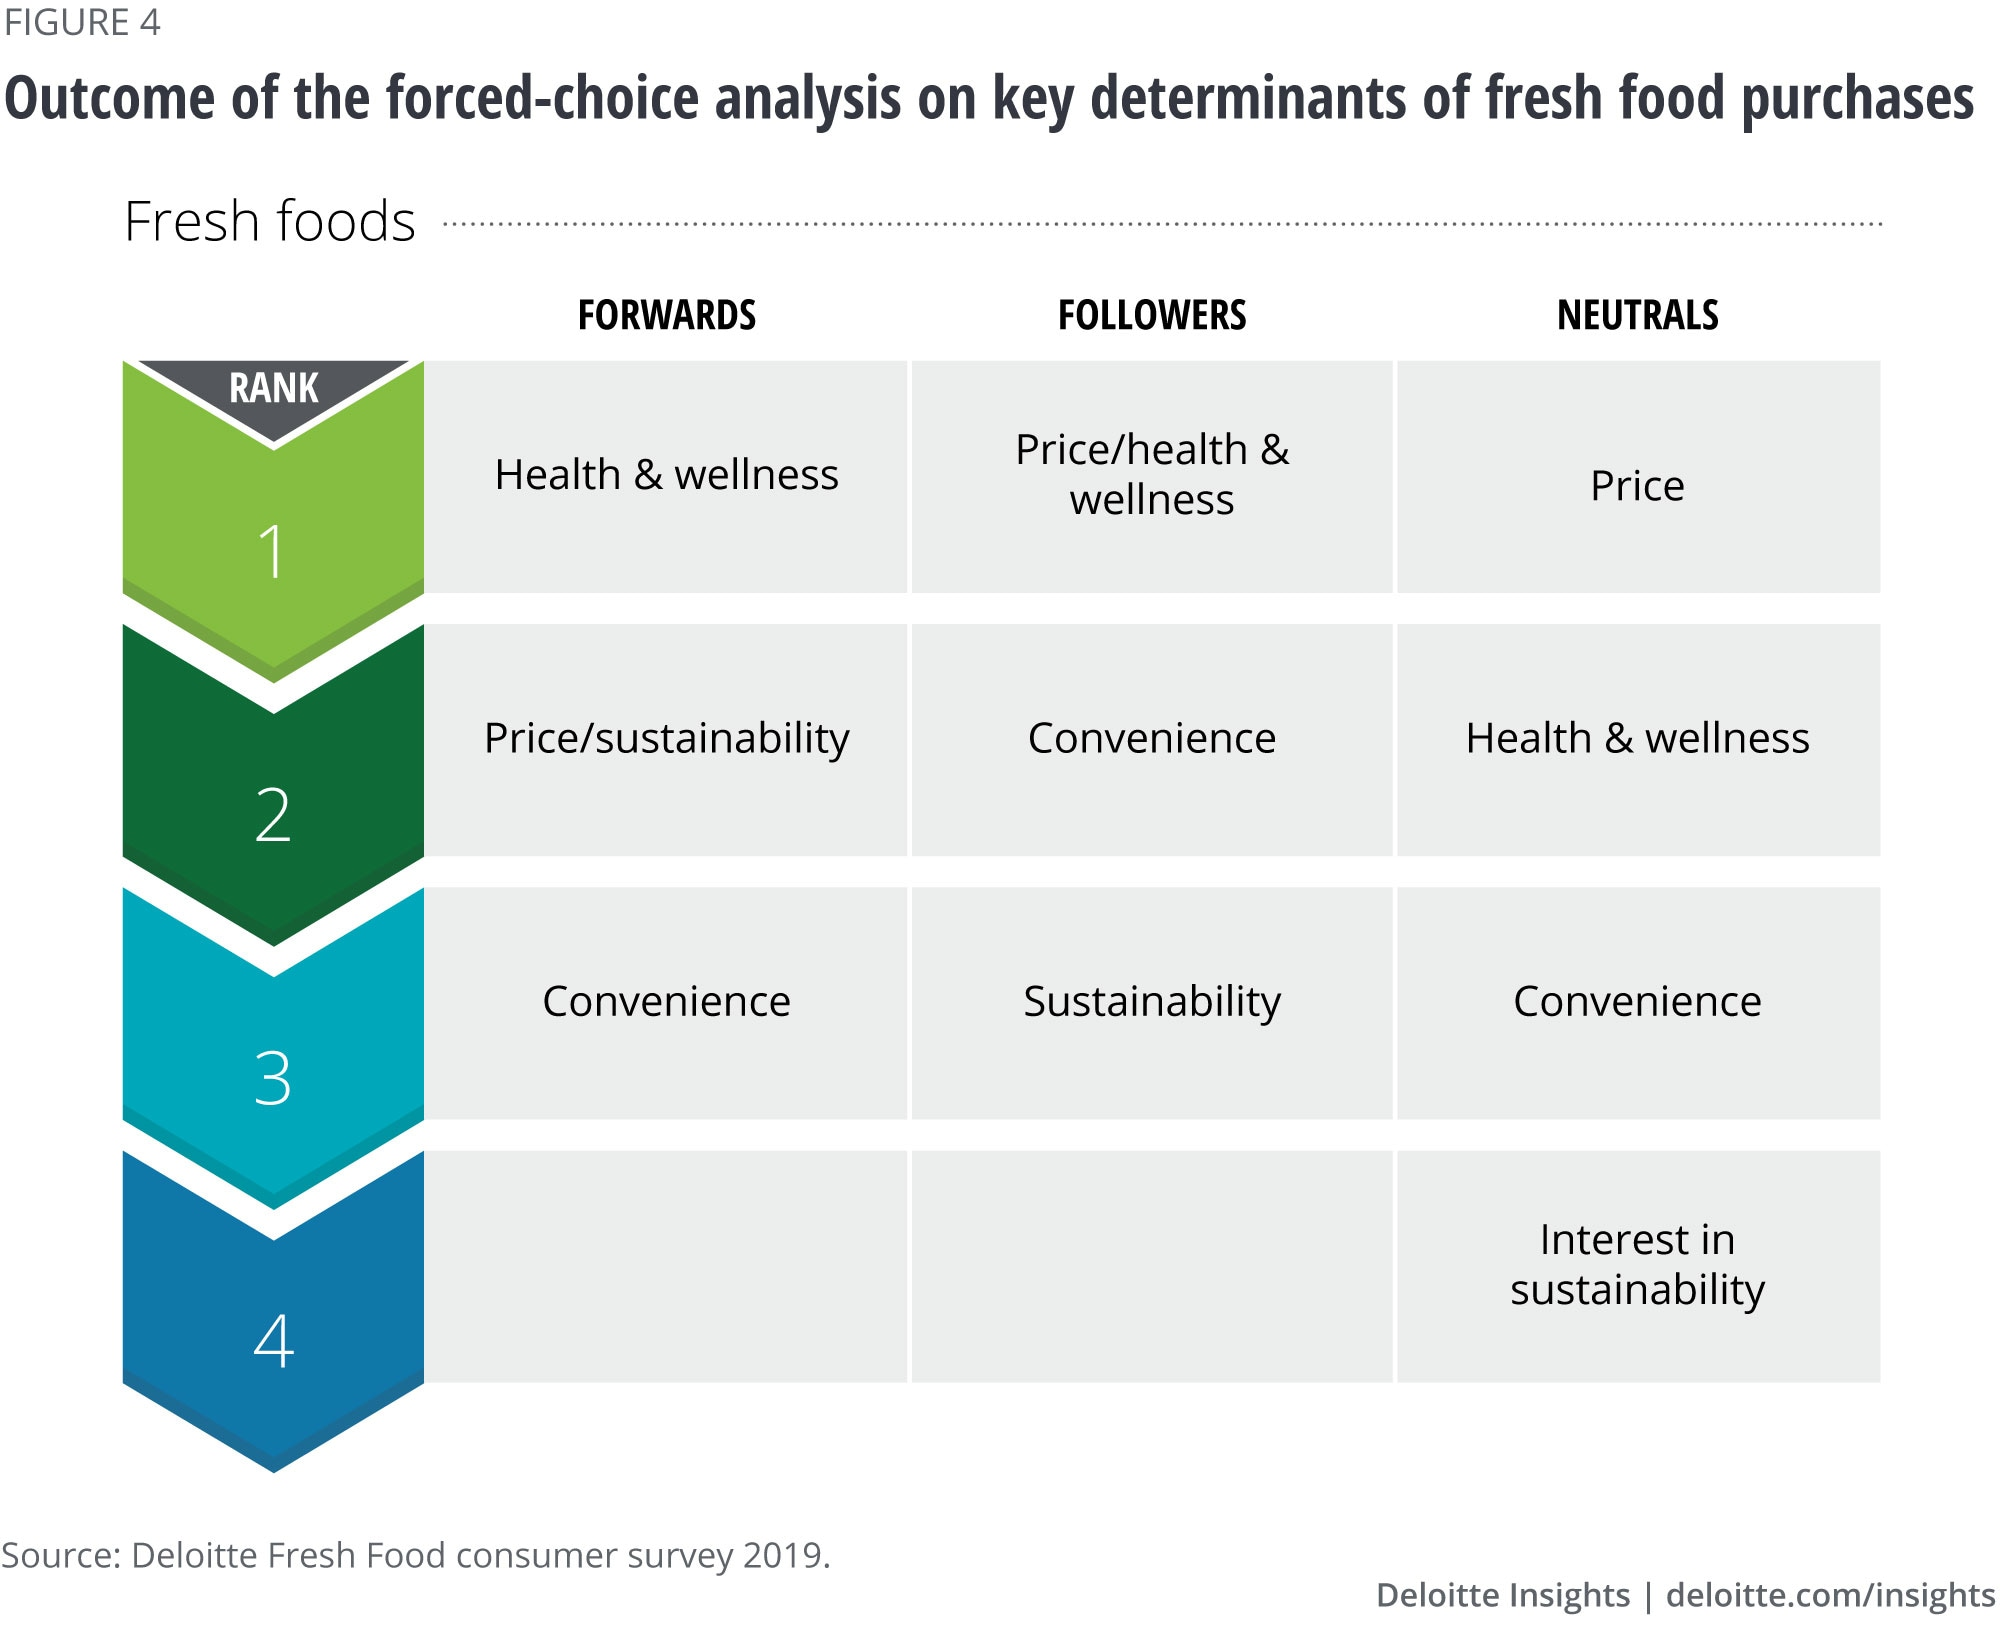 Outcome of the forced-choice analysis on key determinants of fresh food purchases